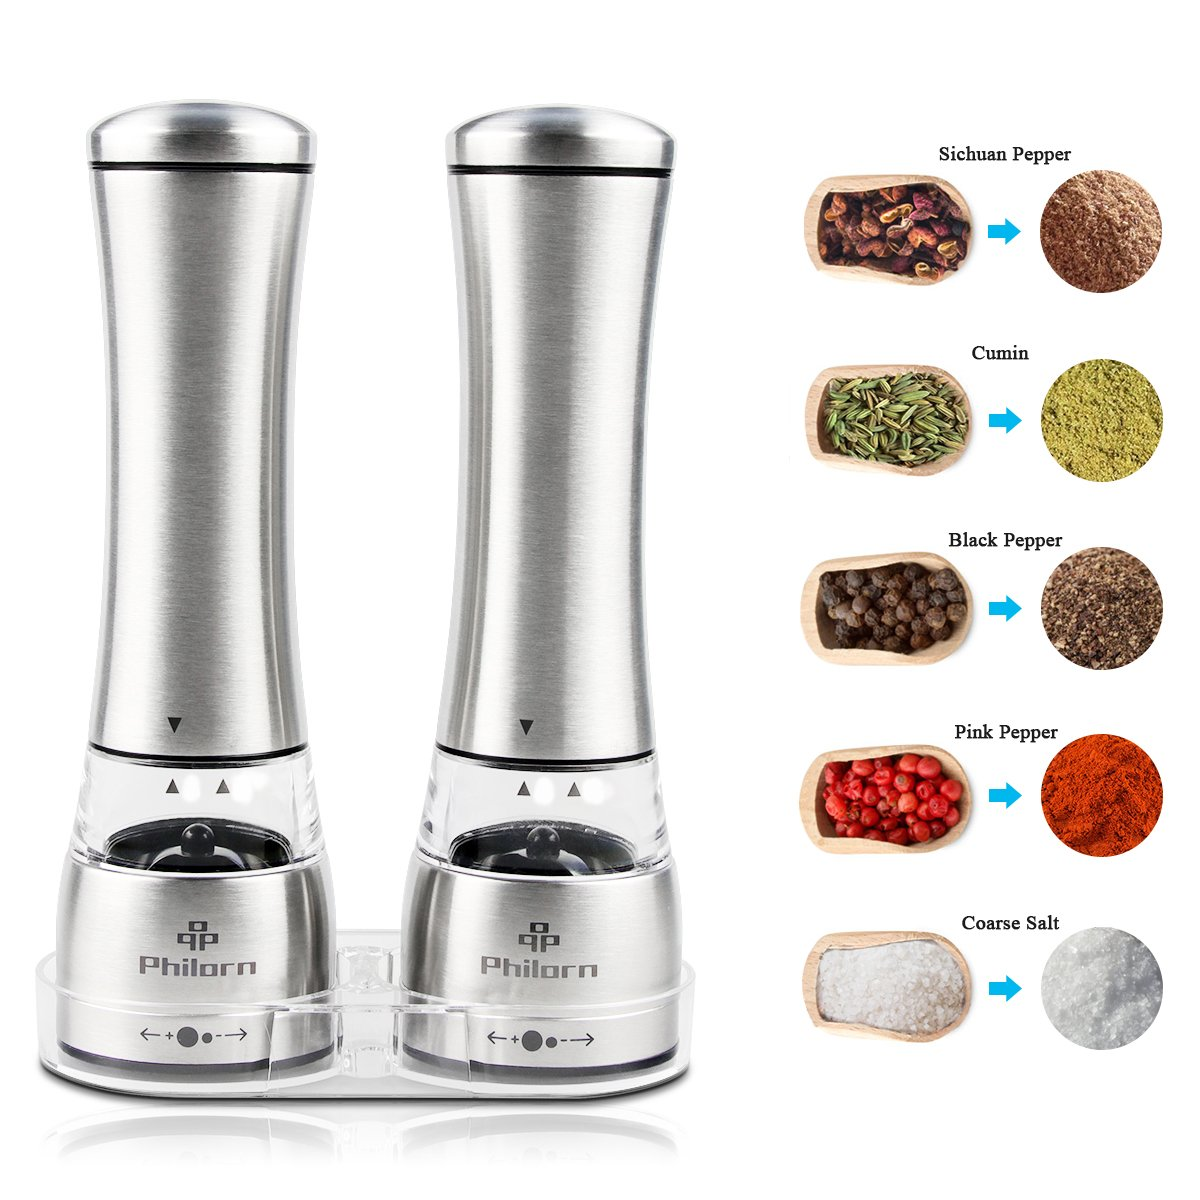 Salt and Pepper Shaker Set of 2, Philorn Mannual Stainless Steel Pepper Mills and Salt Mills, Grinders with Adjustable Coarseness, Ceramic Rotor Grinder with Acrylic Tray